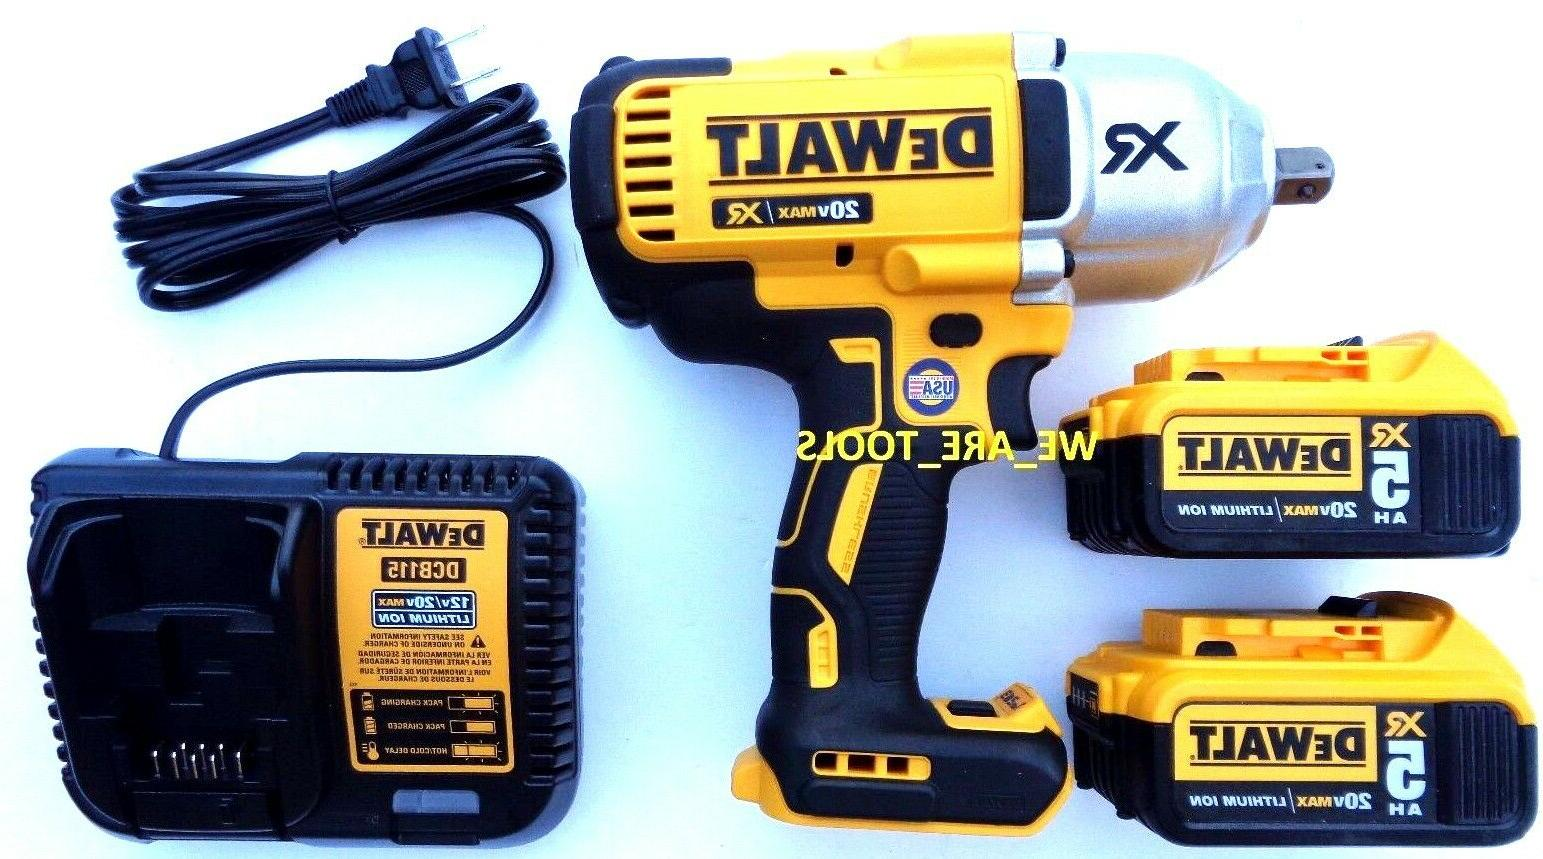 Dewalt DCF899B 20V MAX XR Cordless Lithium-Ion 1/2 in. Brush